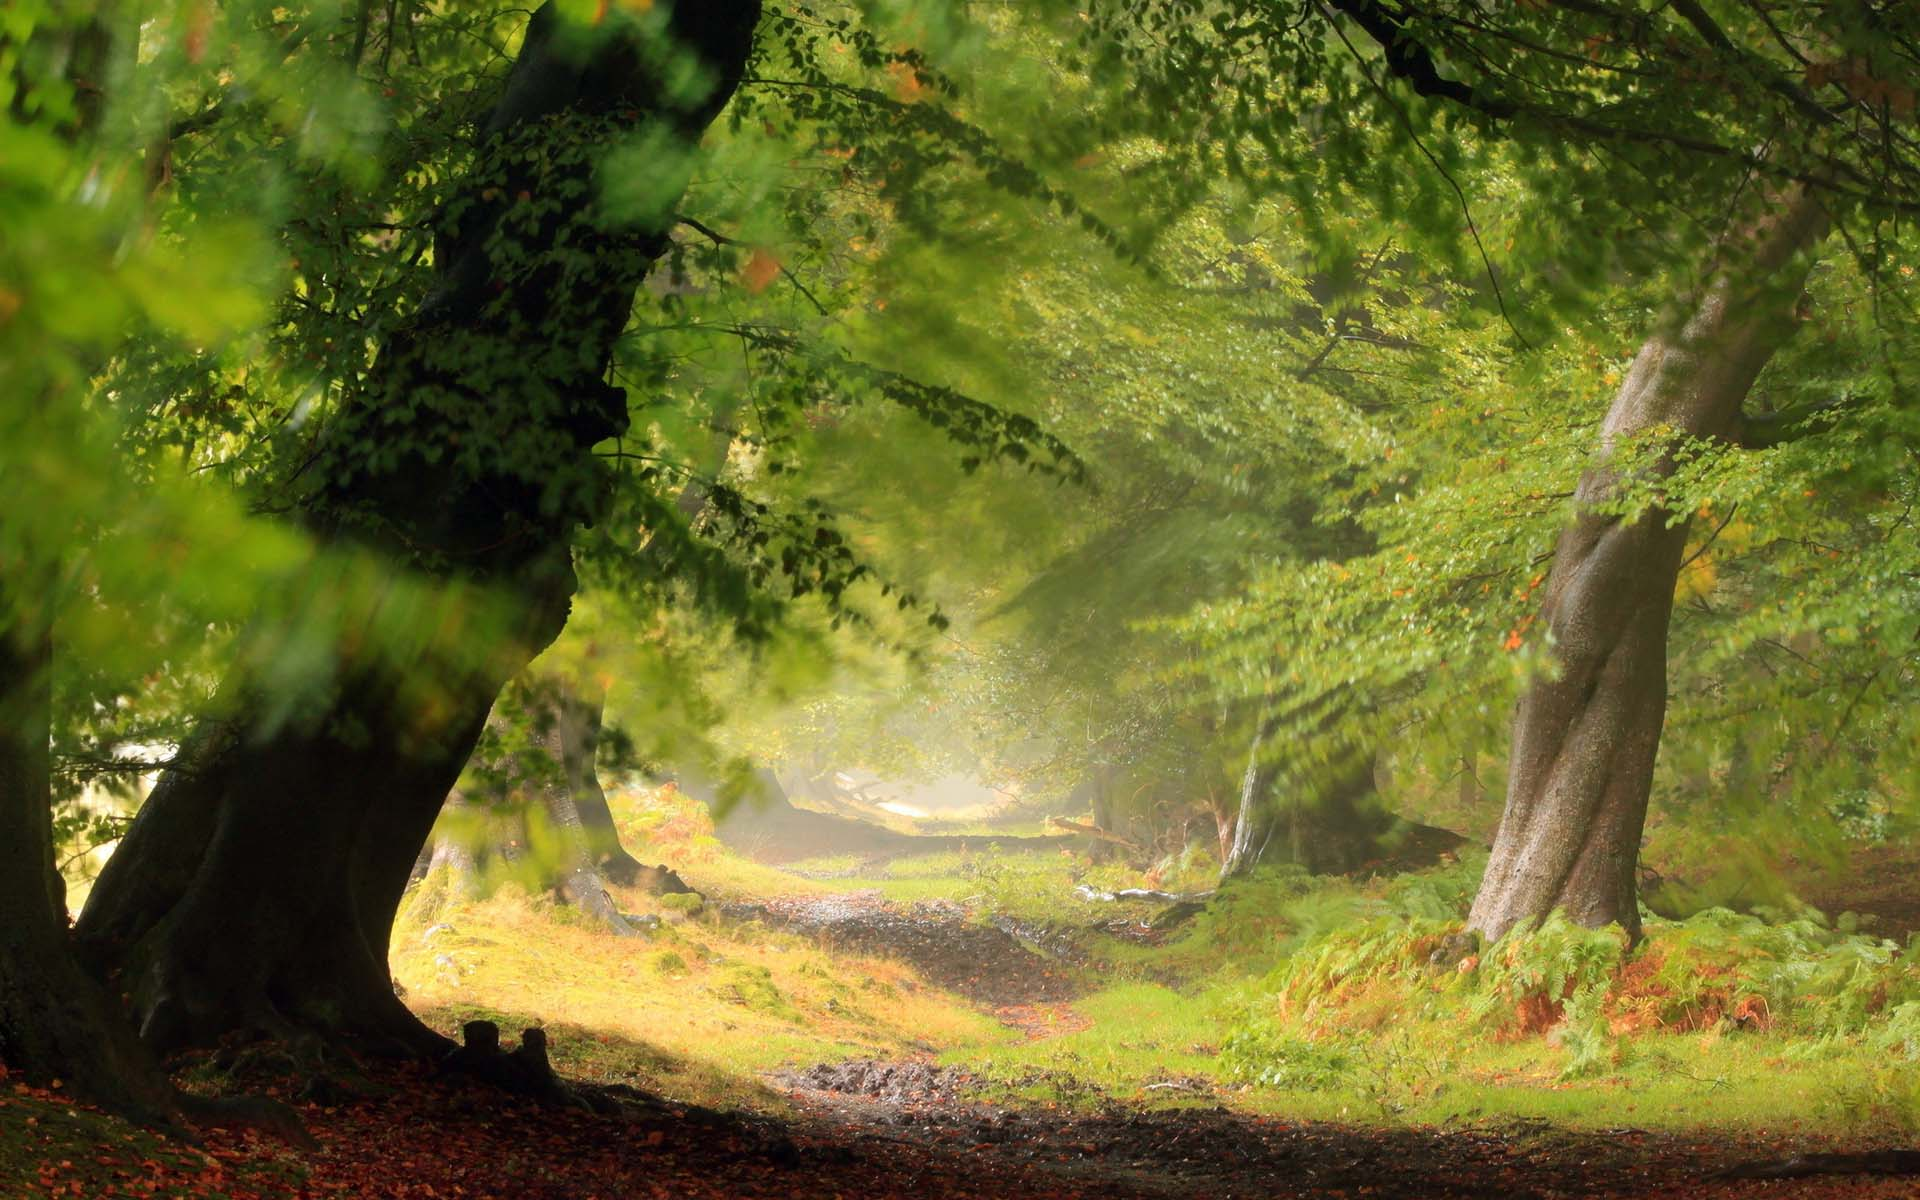 3d forest wallpaper images desktop free download